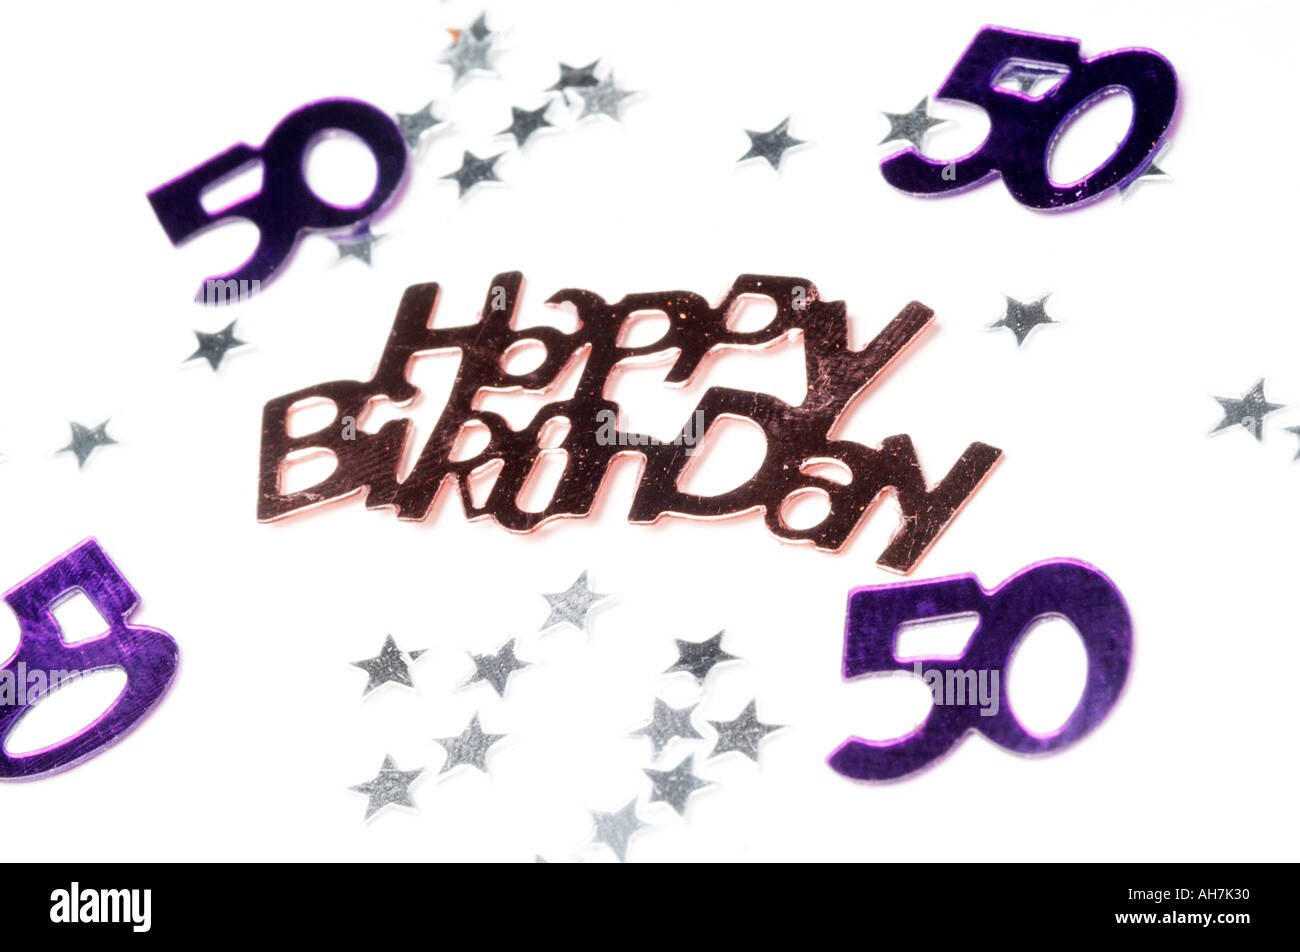 50th Happy Birthday Celebration Congratulations Once A Year Date Of Birth Turning 50 Fifty Years Old Age Aging Getting Older